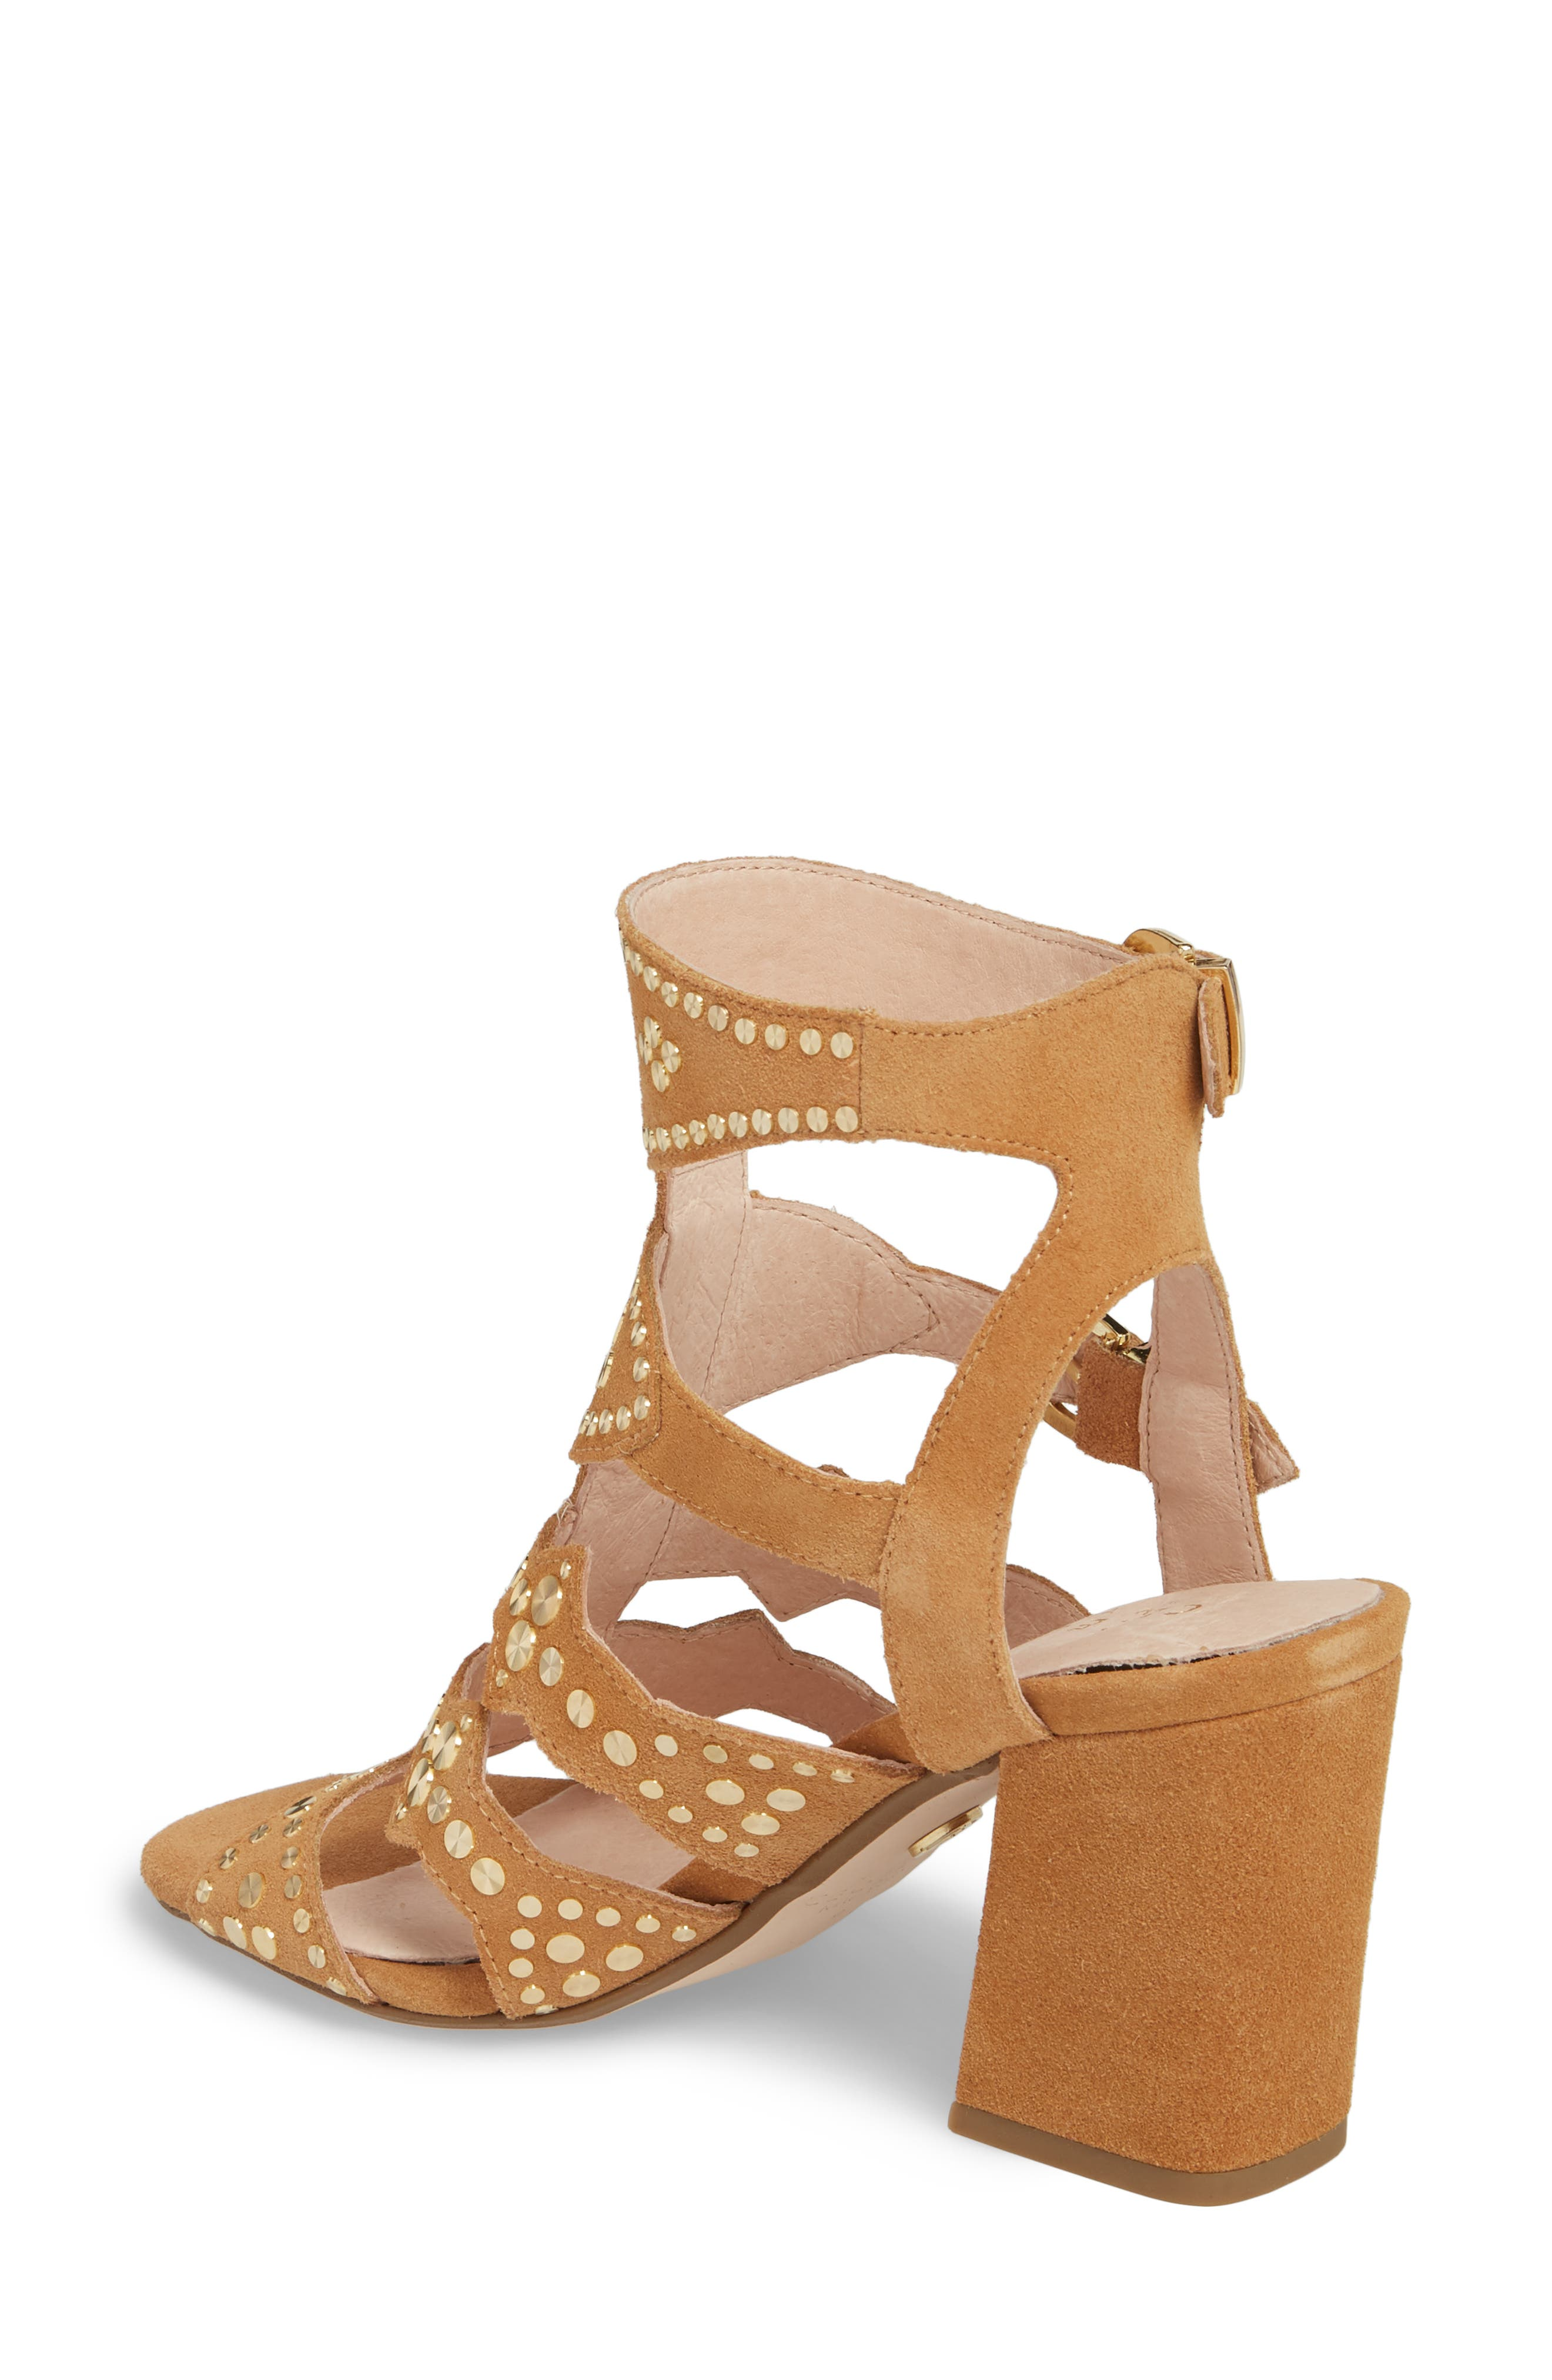 CECELIA NEW YORK,                             Cosmo Studded Sandal,                             Alternate thumbnail 2, color,                             200